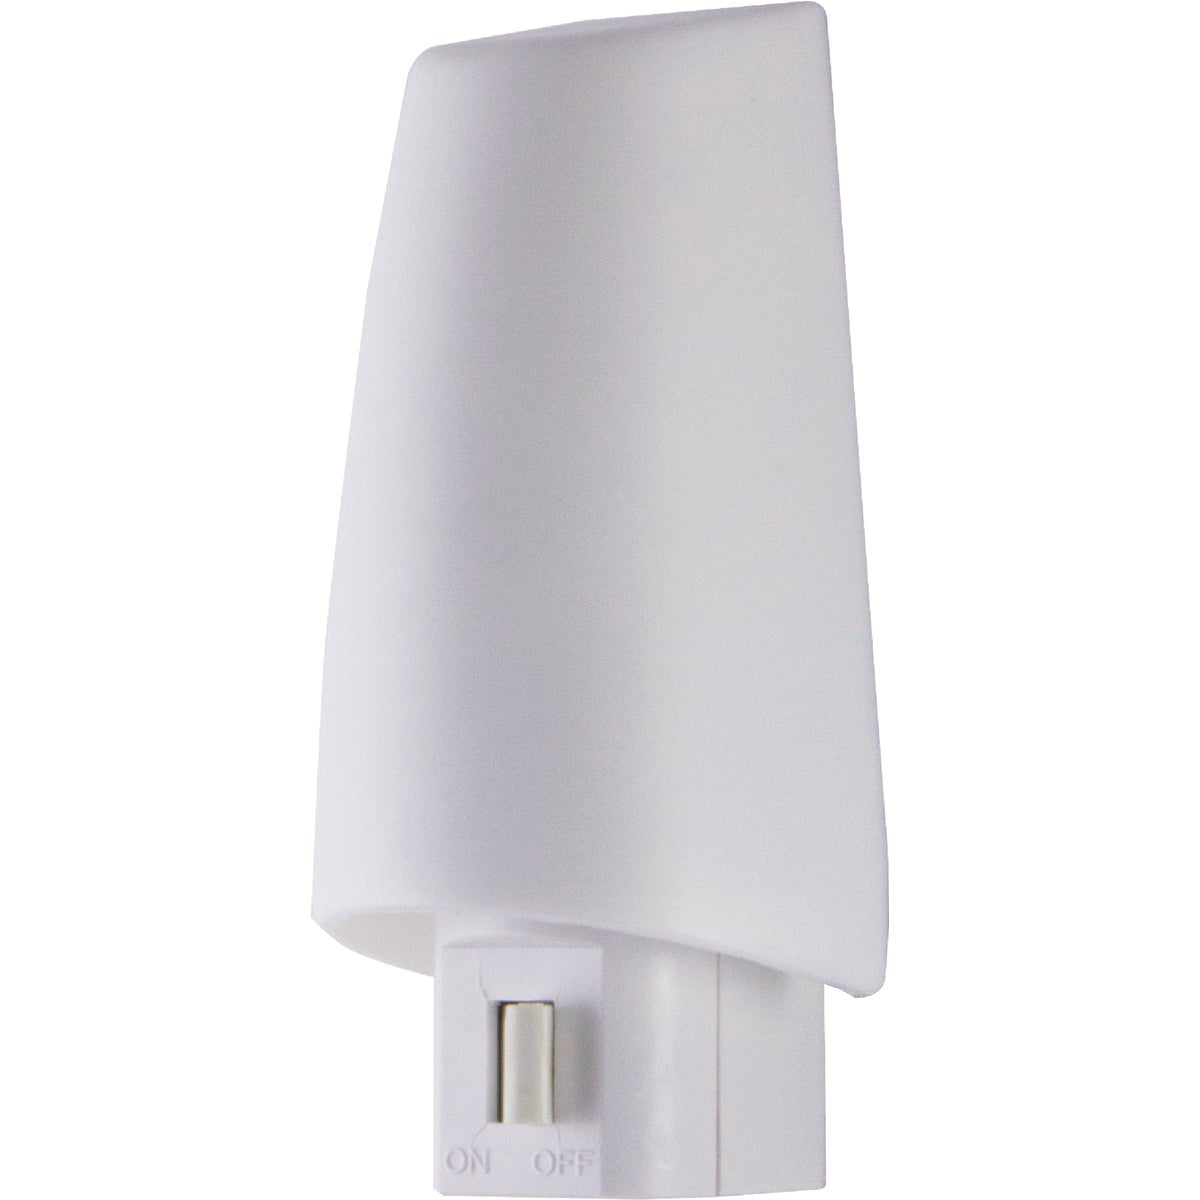 WHITE NIGHT LIGHT - 52194 by Jasco Products Co